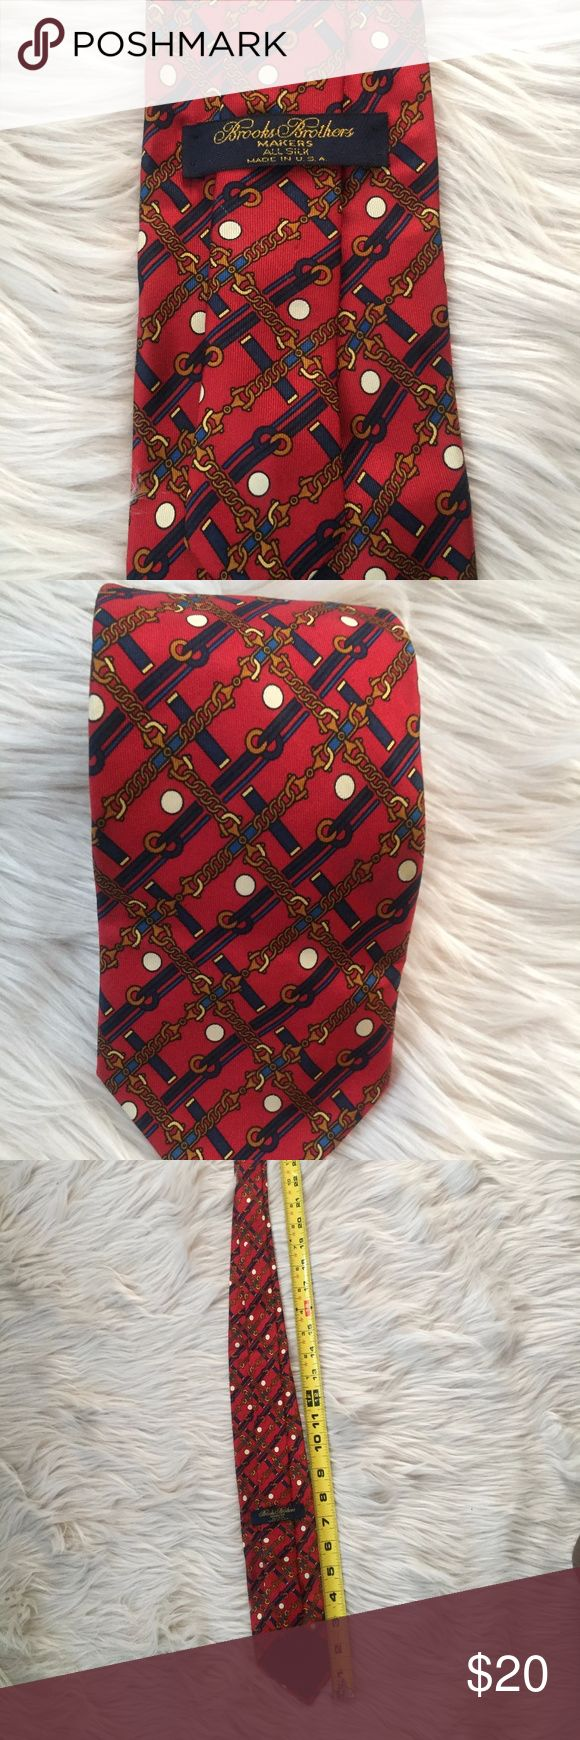 Brooks Brothers USA- Geometric Silk Men's Neck Tie BROOKS BROTHERS TIE LIKE NEW! NO STAINS! NO RIPS! 100% SILK WIDTH:  APPROX 3 1/4 IN. LENGTH: 58 IN THE BACKGROUND COLOR IS RED, WITH BLUES, BROWN AND WHITE Brooks Brothers Accessories Ties